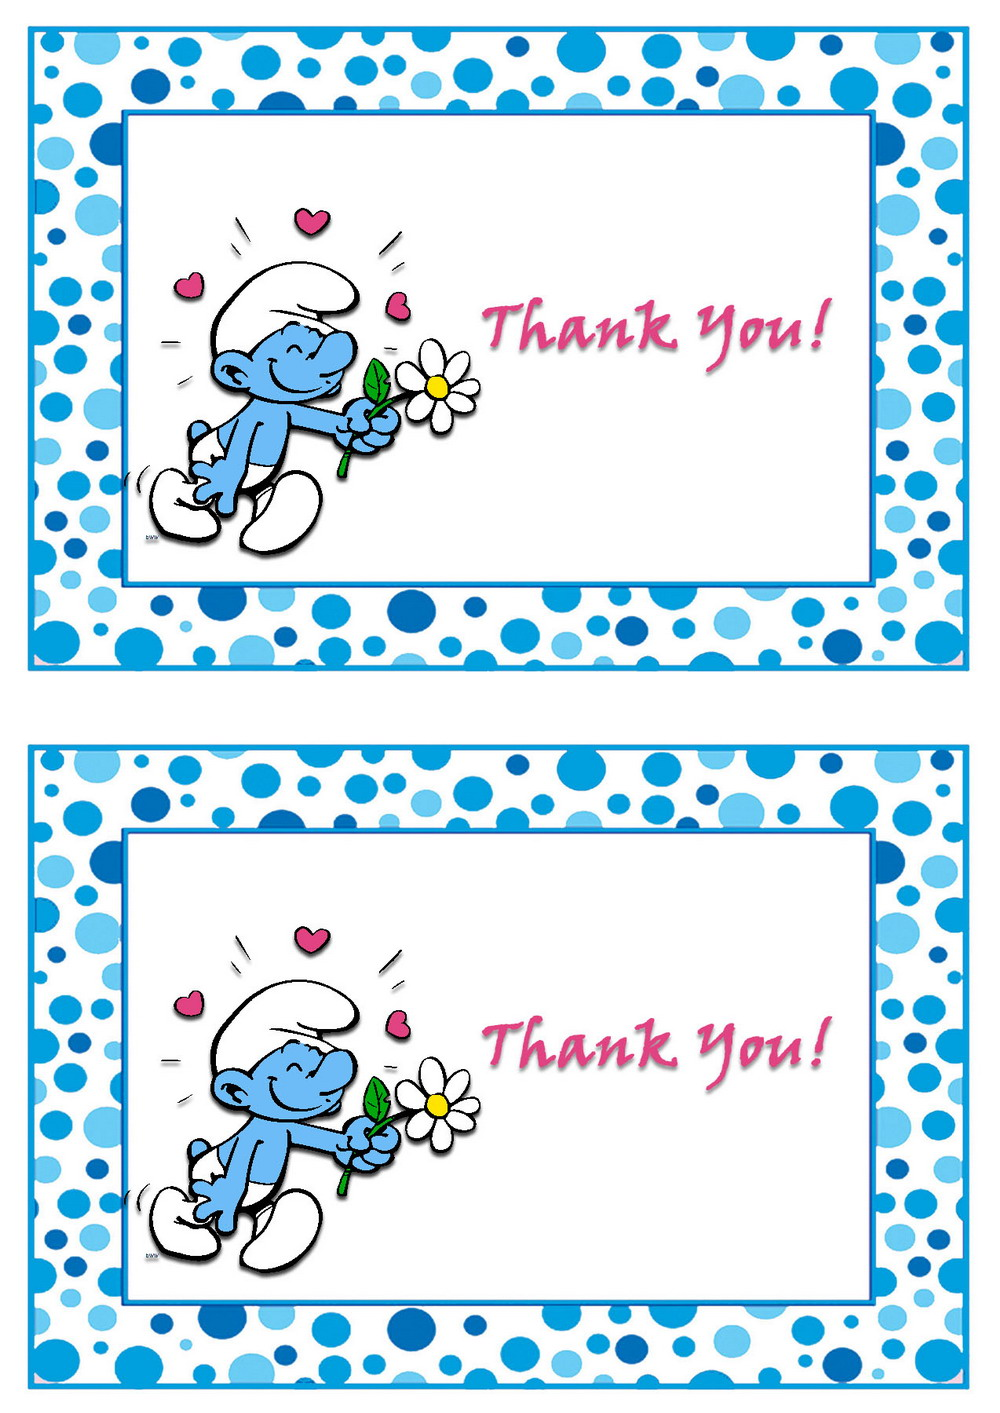 Smurfs Invitation Cards is awesome invitations layout